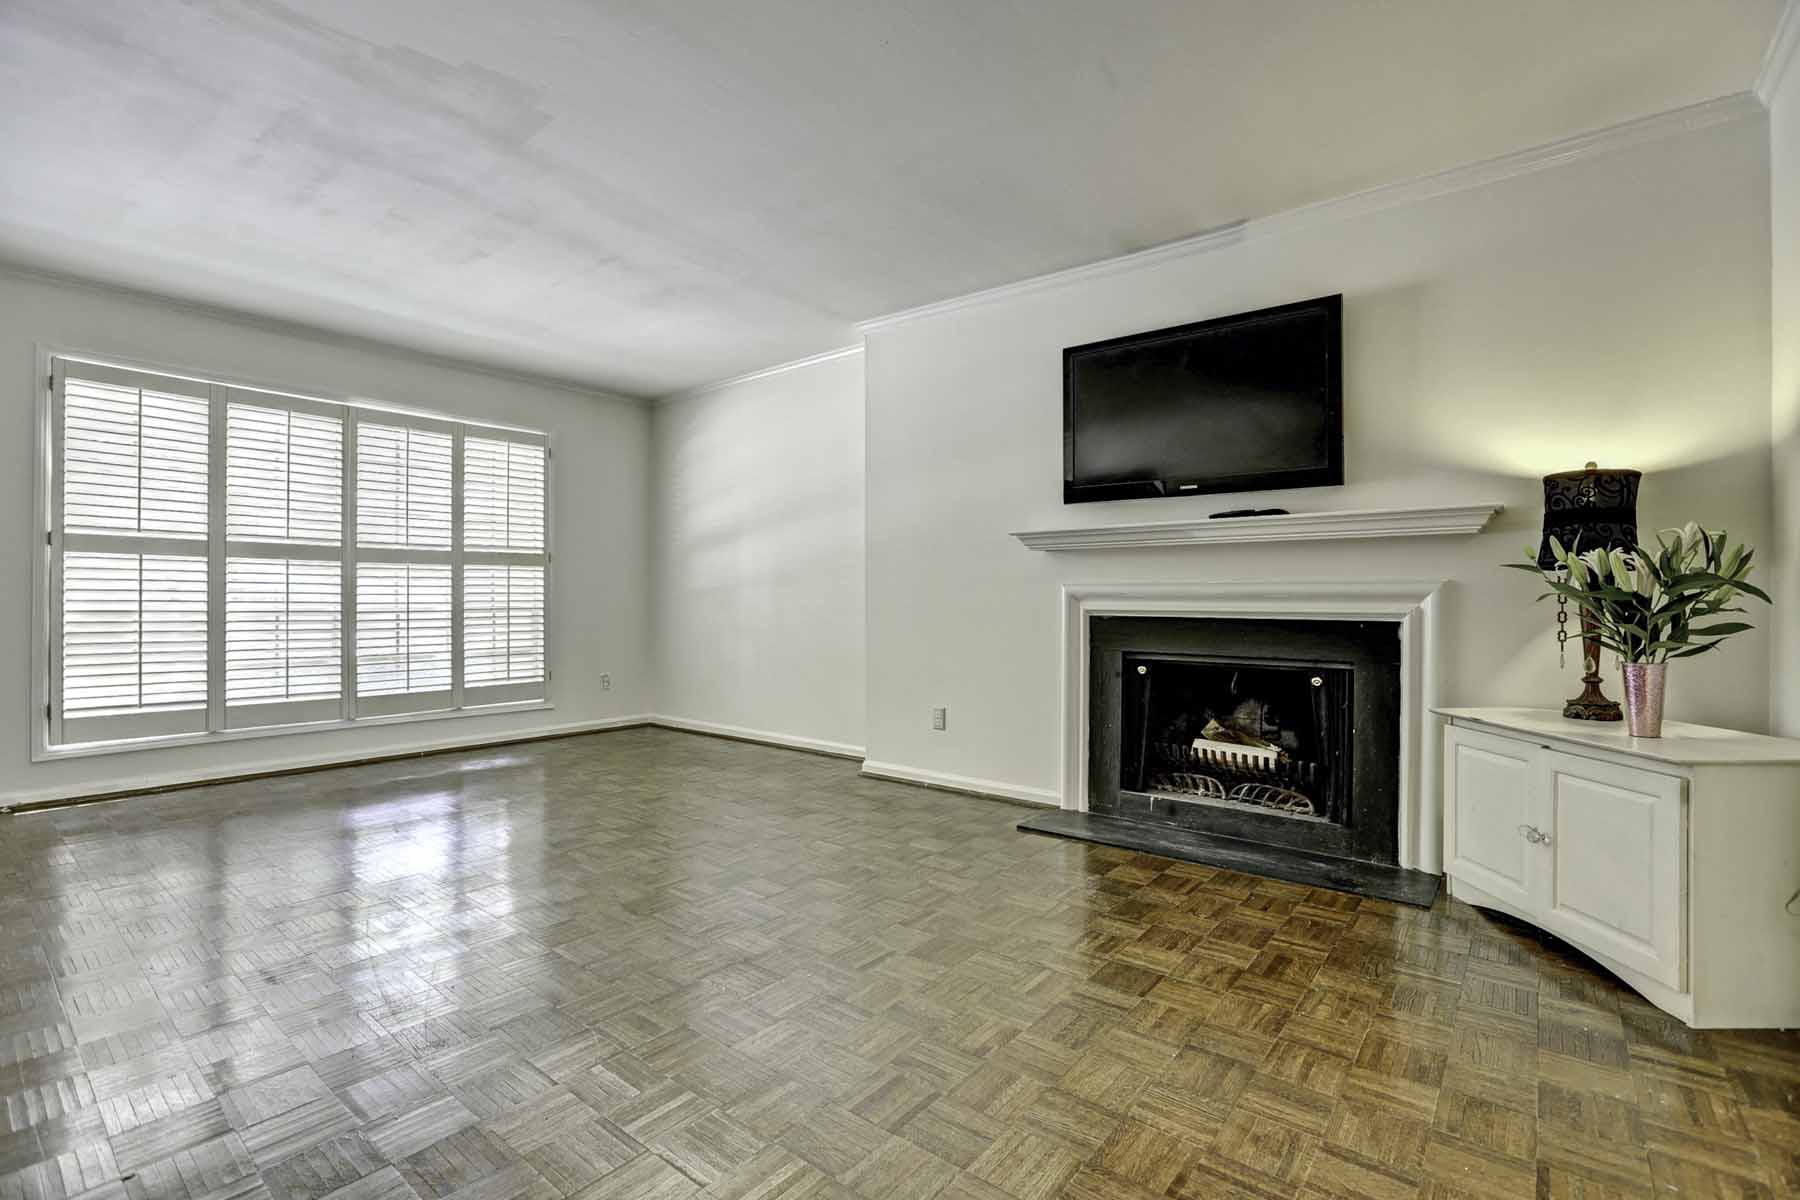 Condominium for Sale at Fantastic Round Hill Townhome 5400 Roswell Road Unit I-4 Atlanta, Georgia, 30342 United States